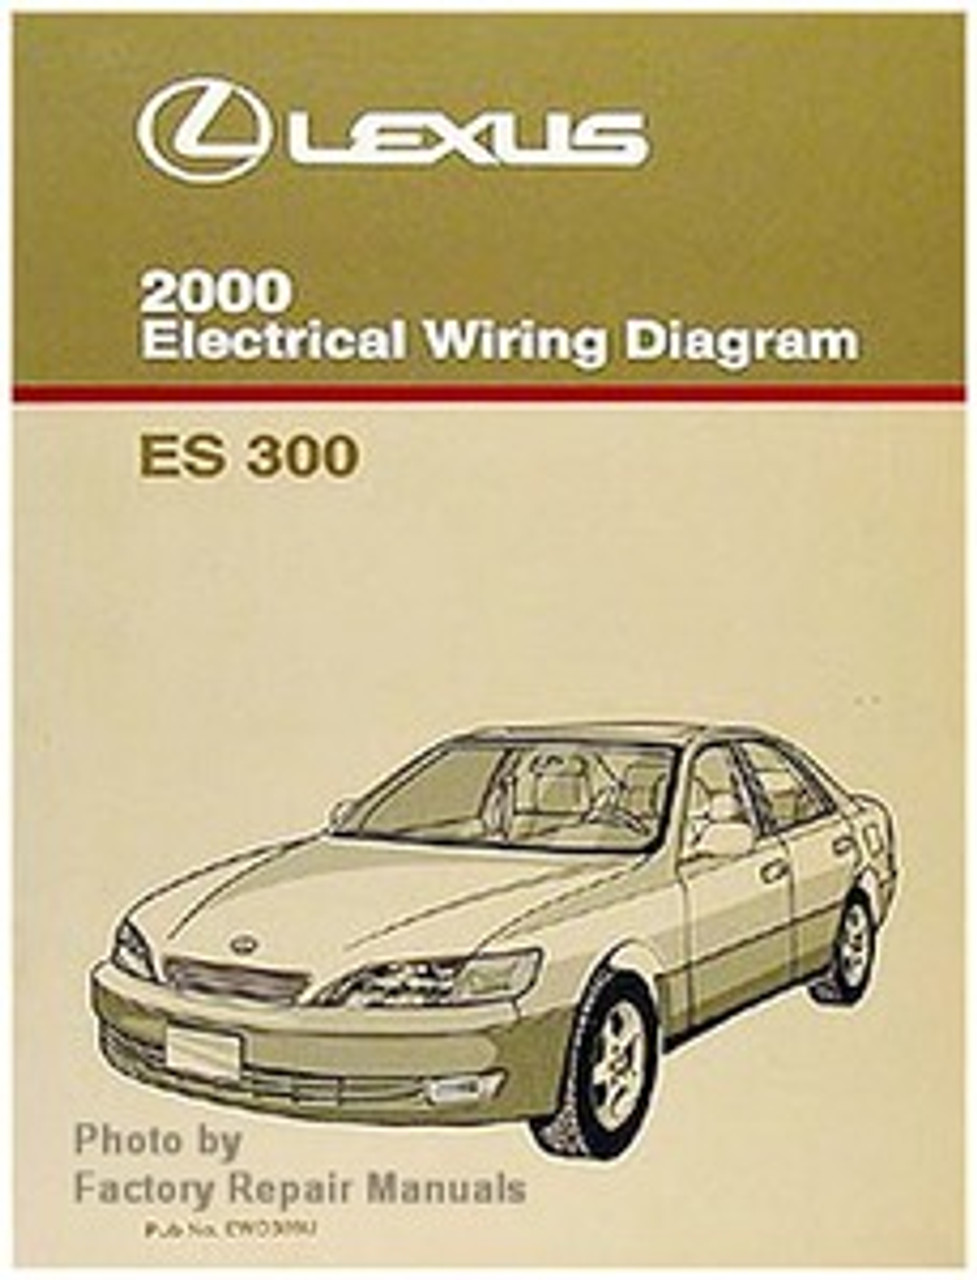 2000 Lexus Es300 Electrical Wiring Diagrams